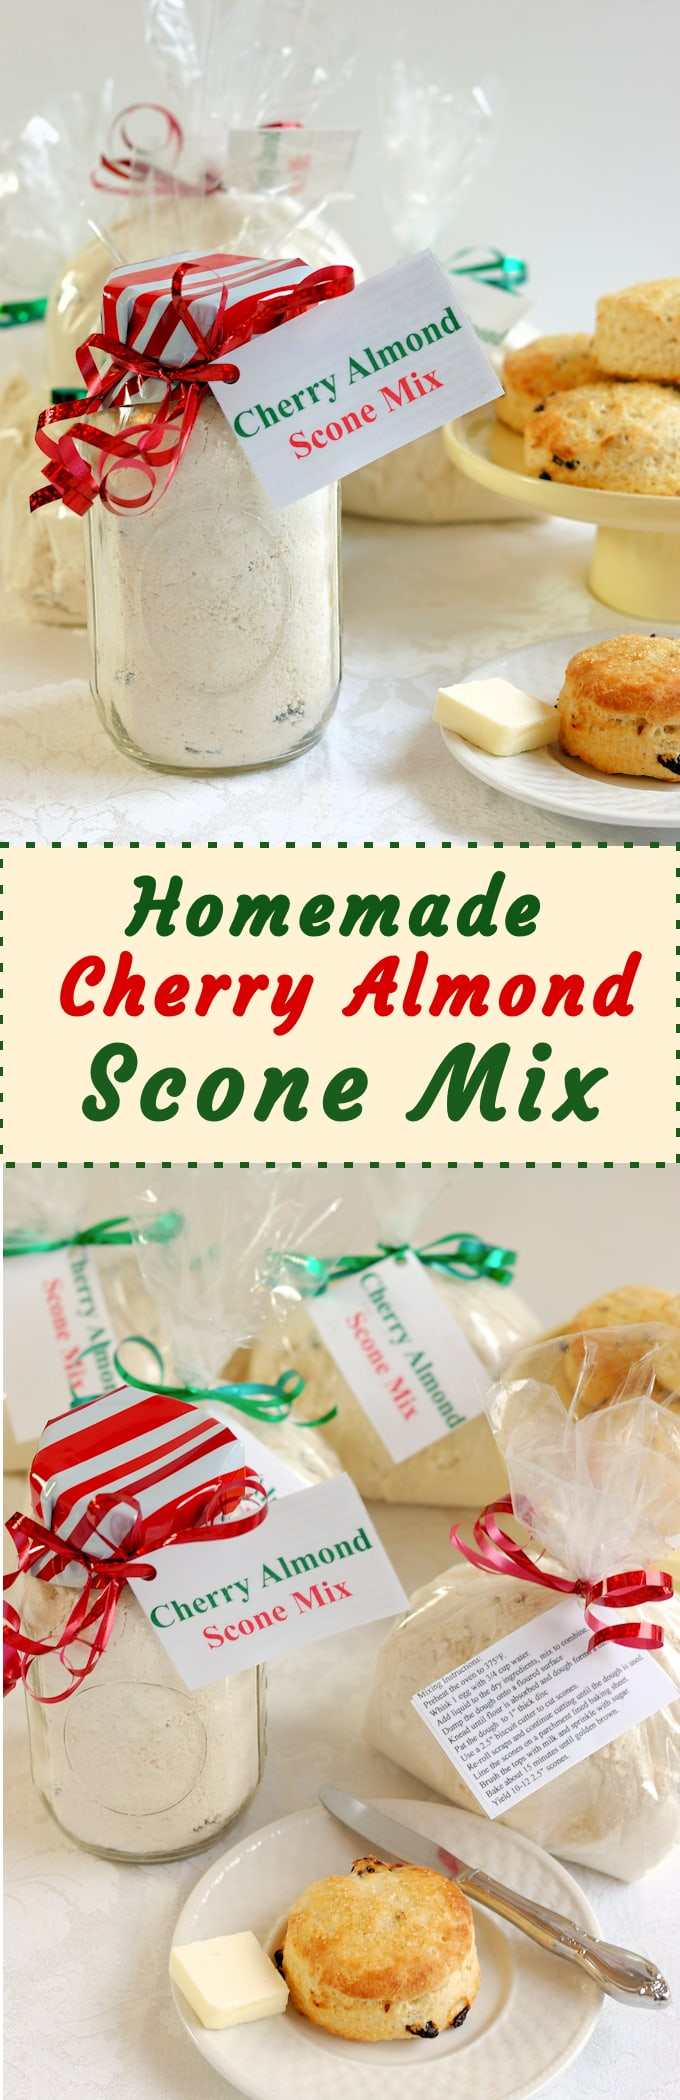 There's nothing nicer than a gift from the kitchen. Scone mix is easy to make and everyone loves a freshly baked scones. #SundaySupper